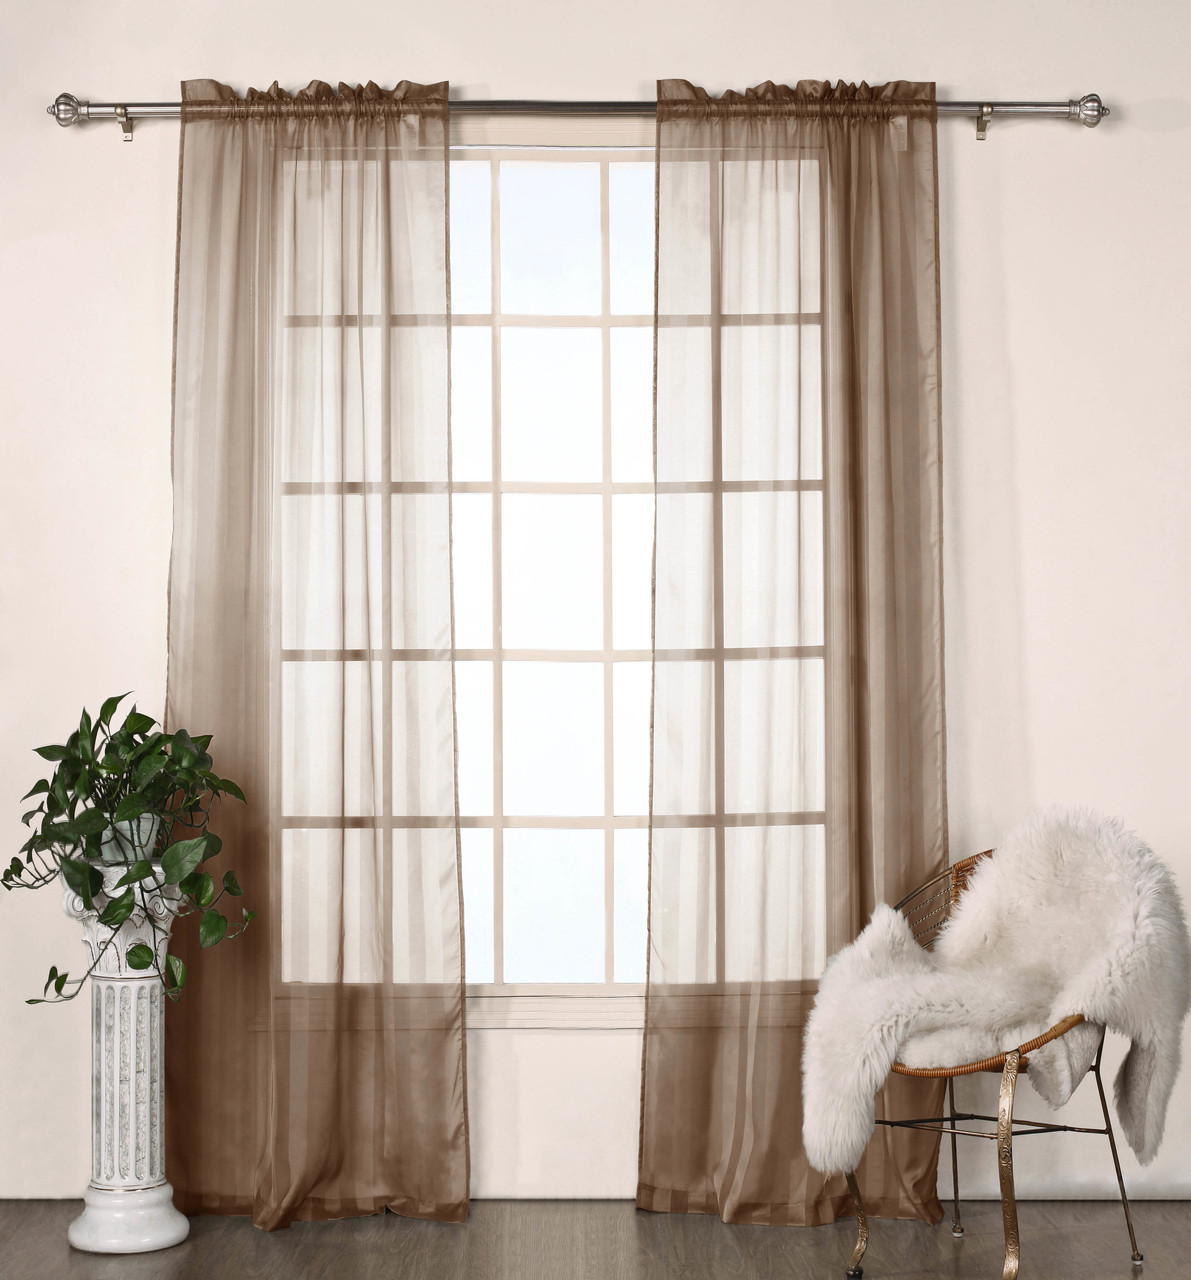 Set Of Two 2 Brown Sheer Window Curtain Panels Satin Stripe 76 W X 84 L My Infinity Store